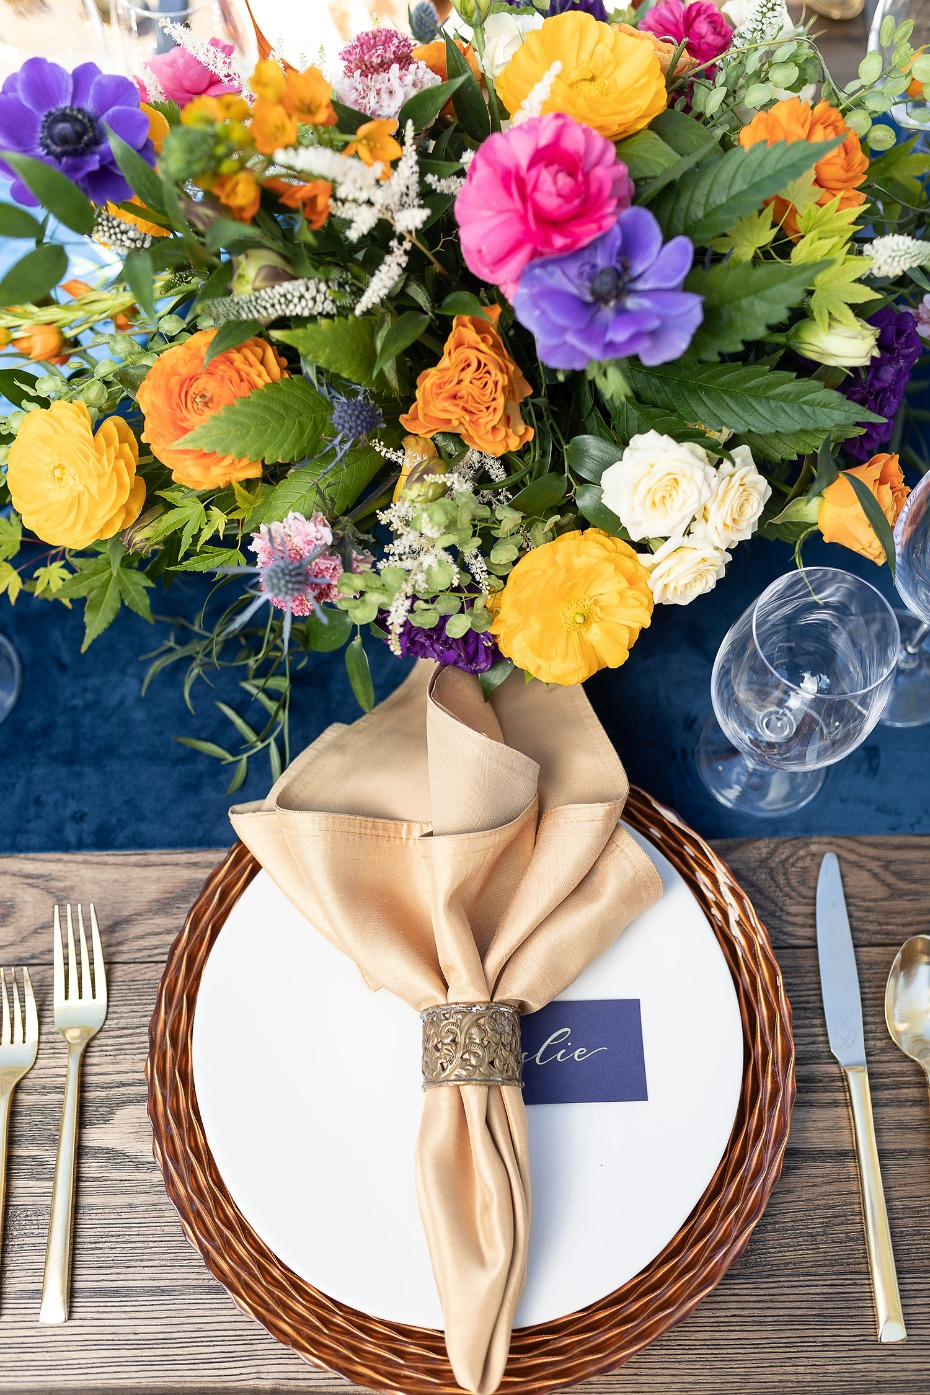 Chic place setting idea